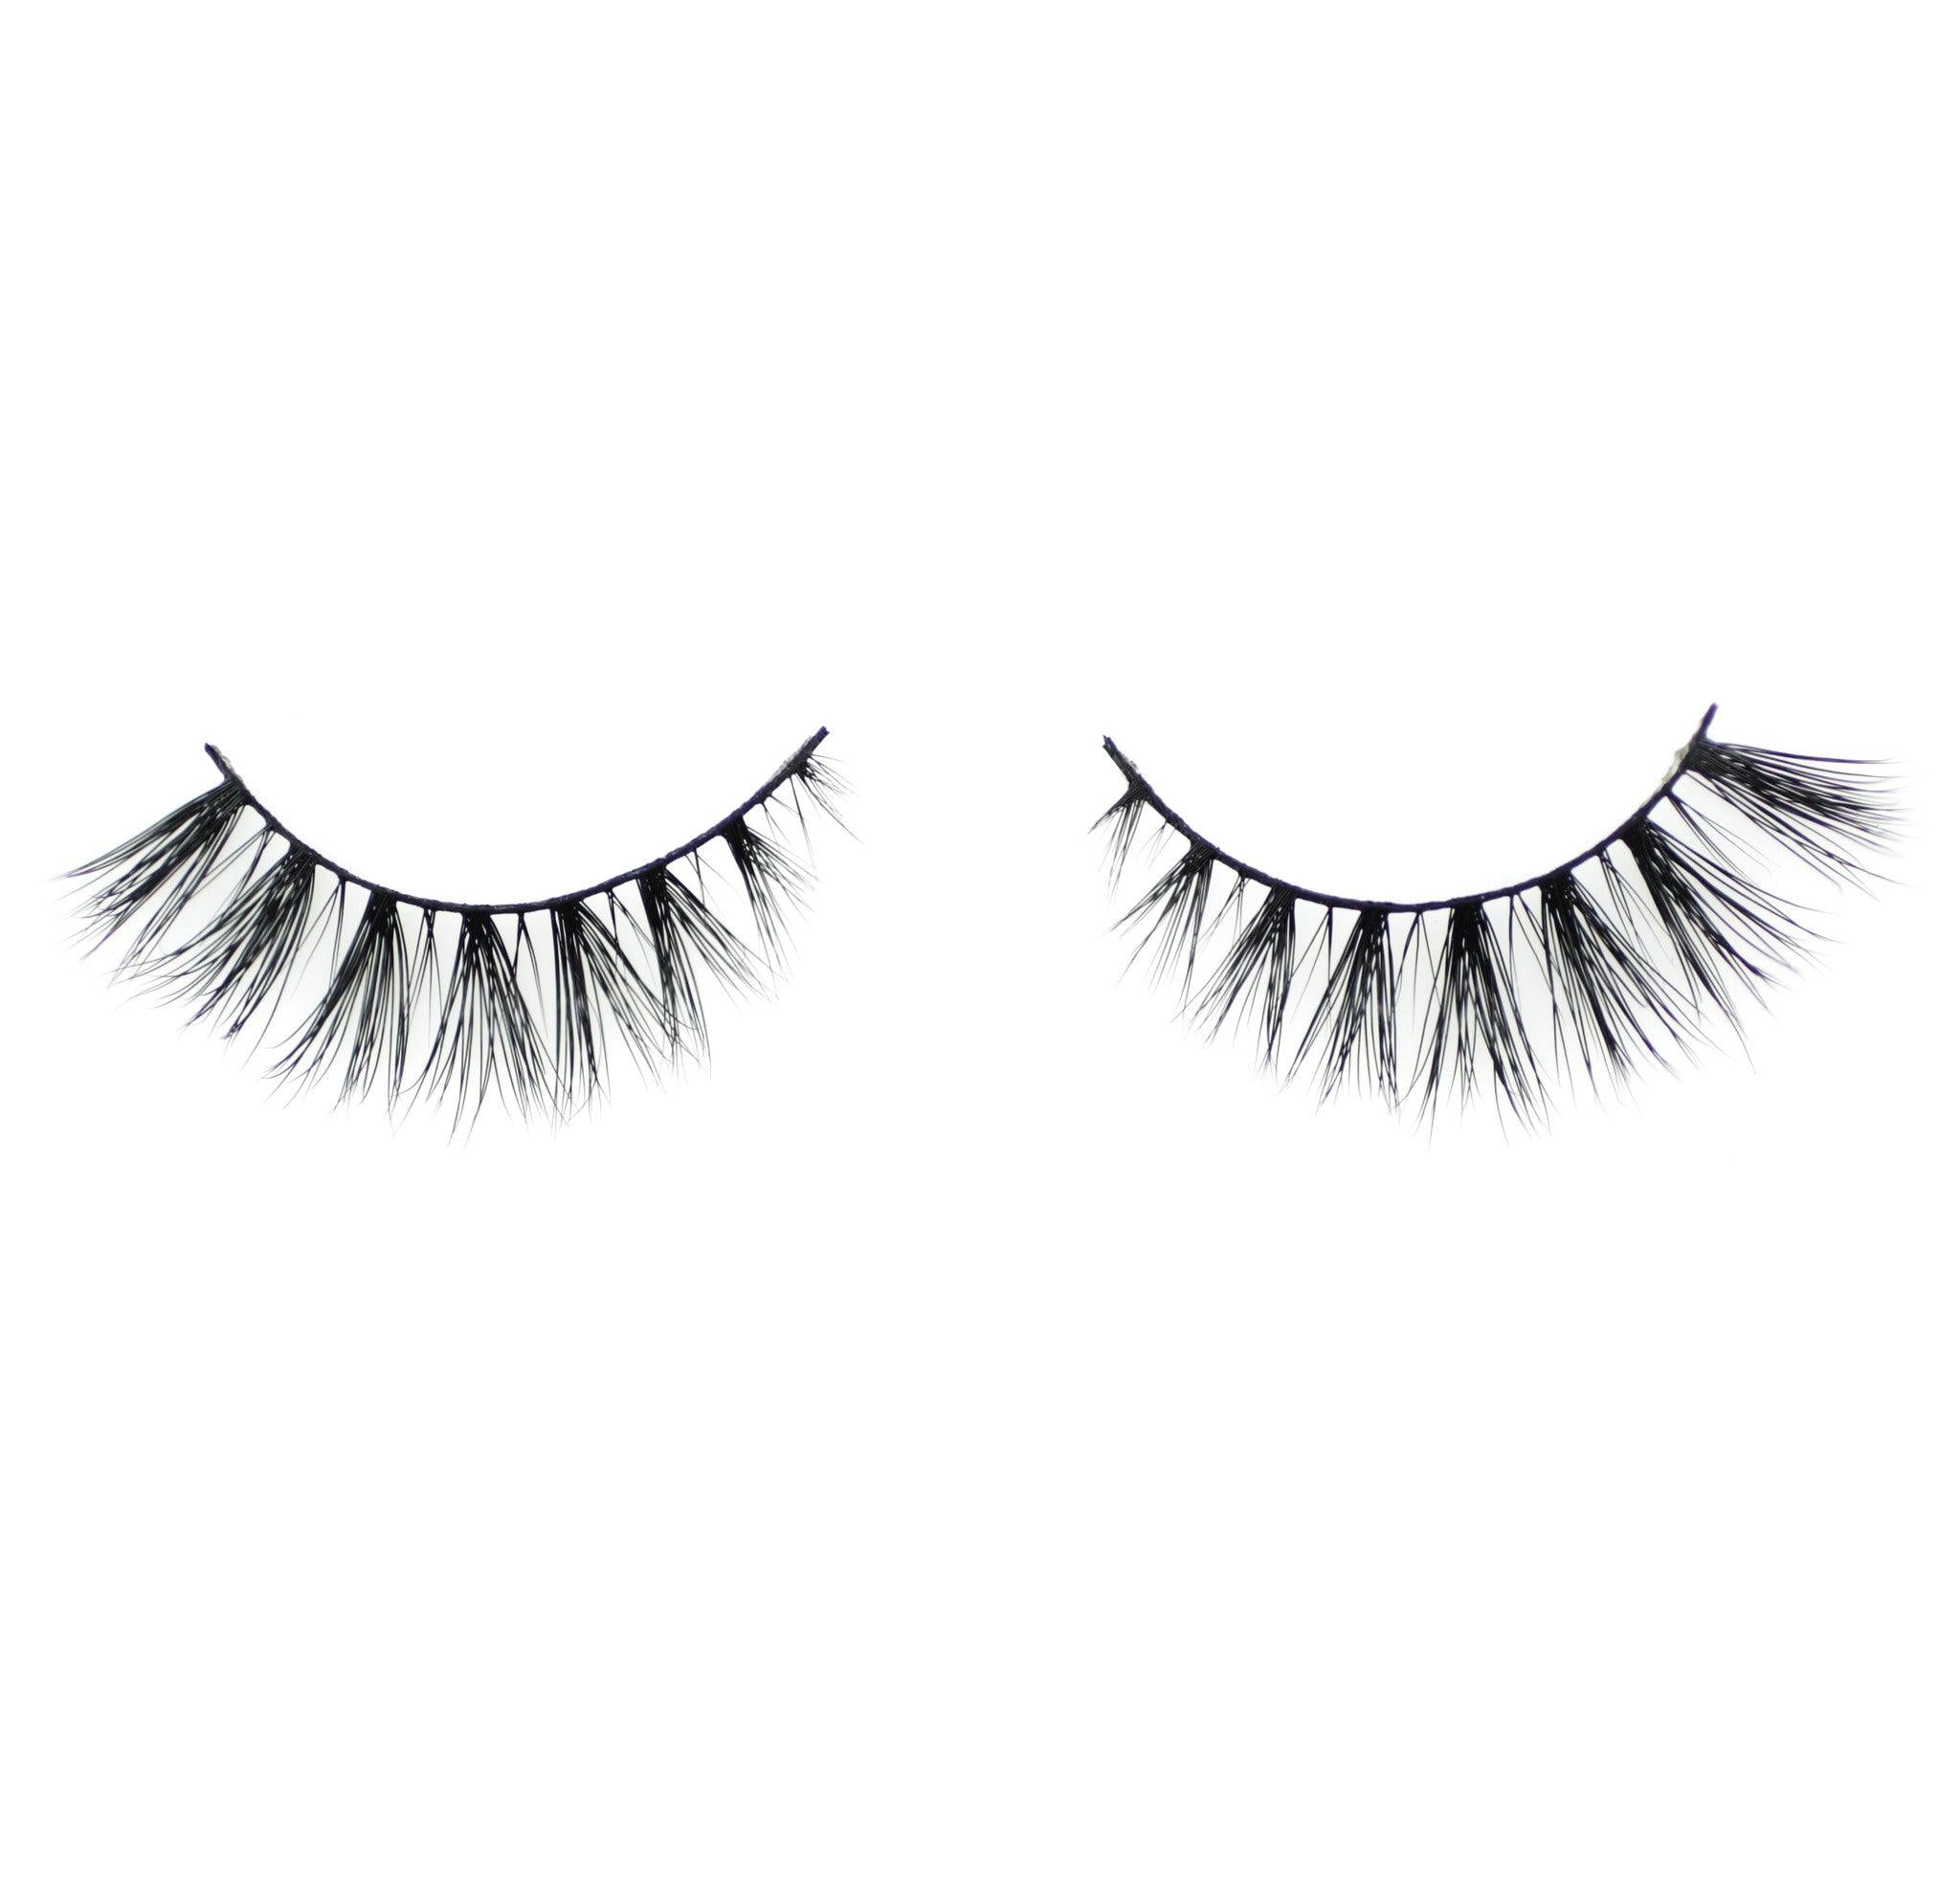 Mink eye lashes (6 photos) - Photography and Web Design - Los Angeles, US based Shopify Experts Revo Designs